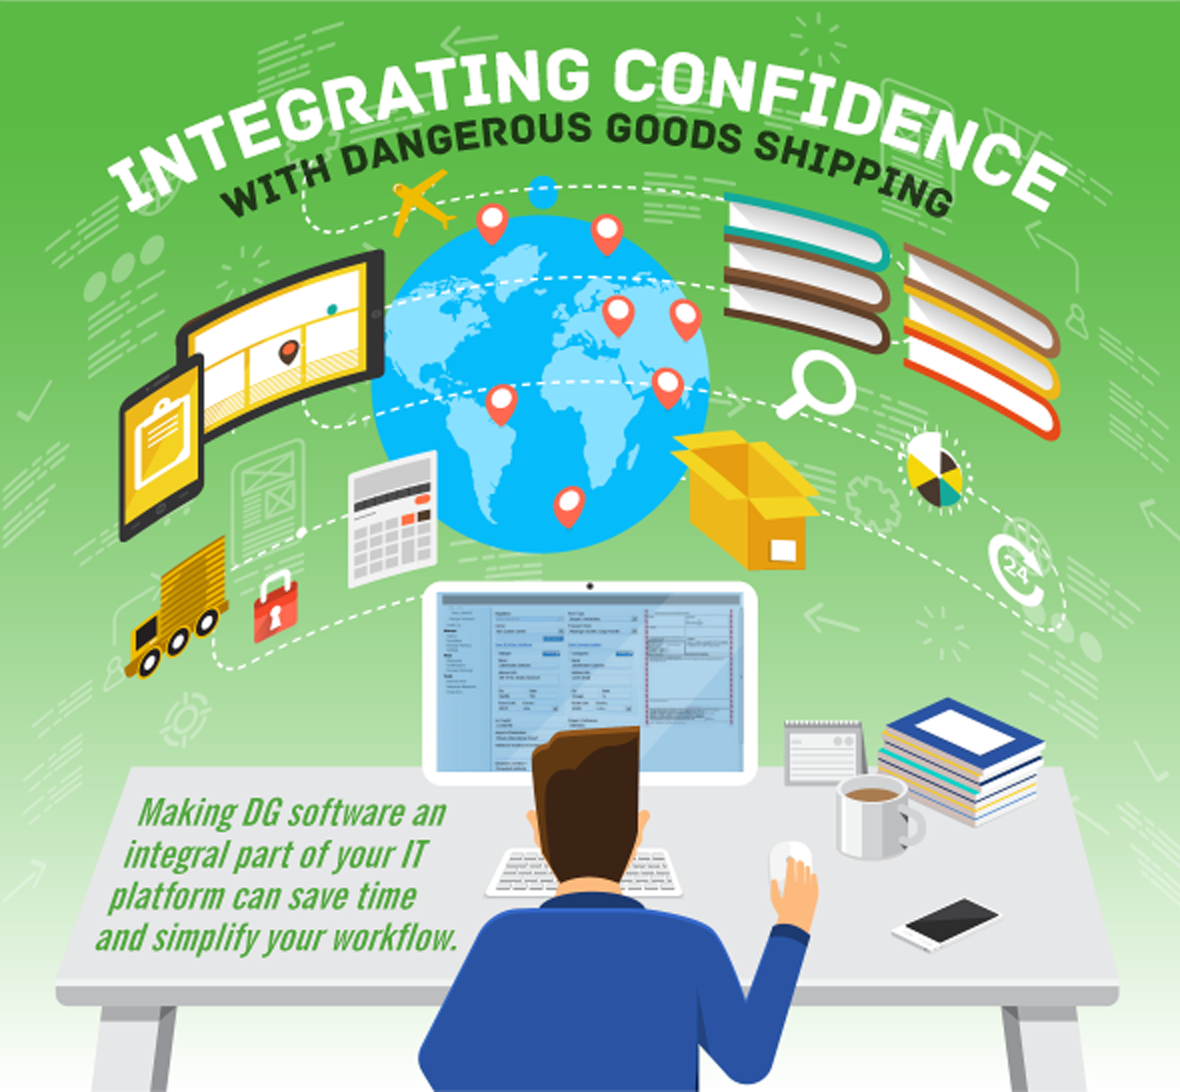 Integrating Confidence with Dangerous Goods Shipping